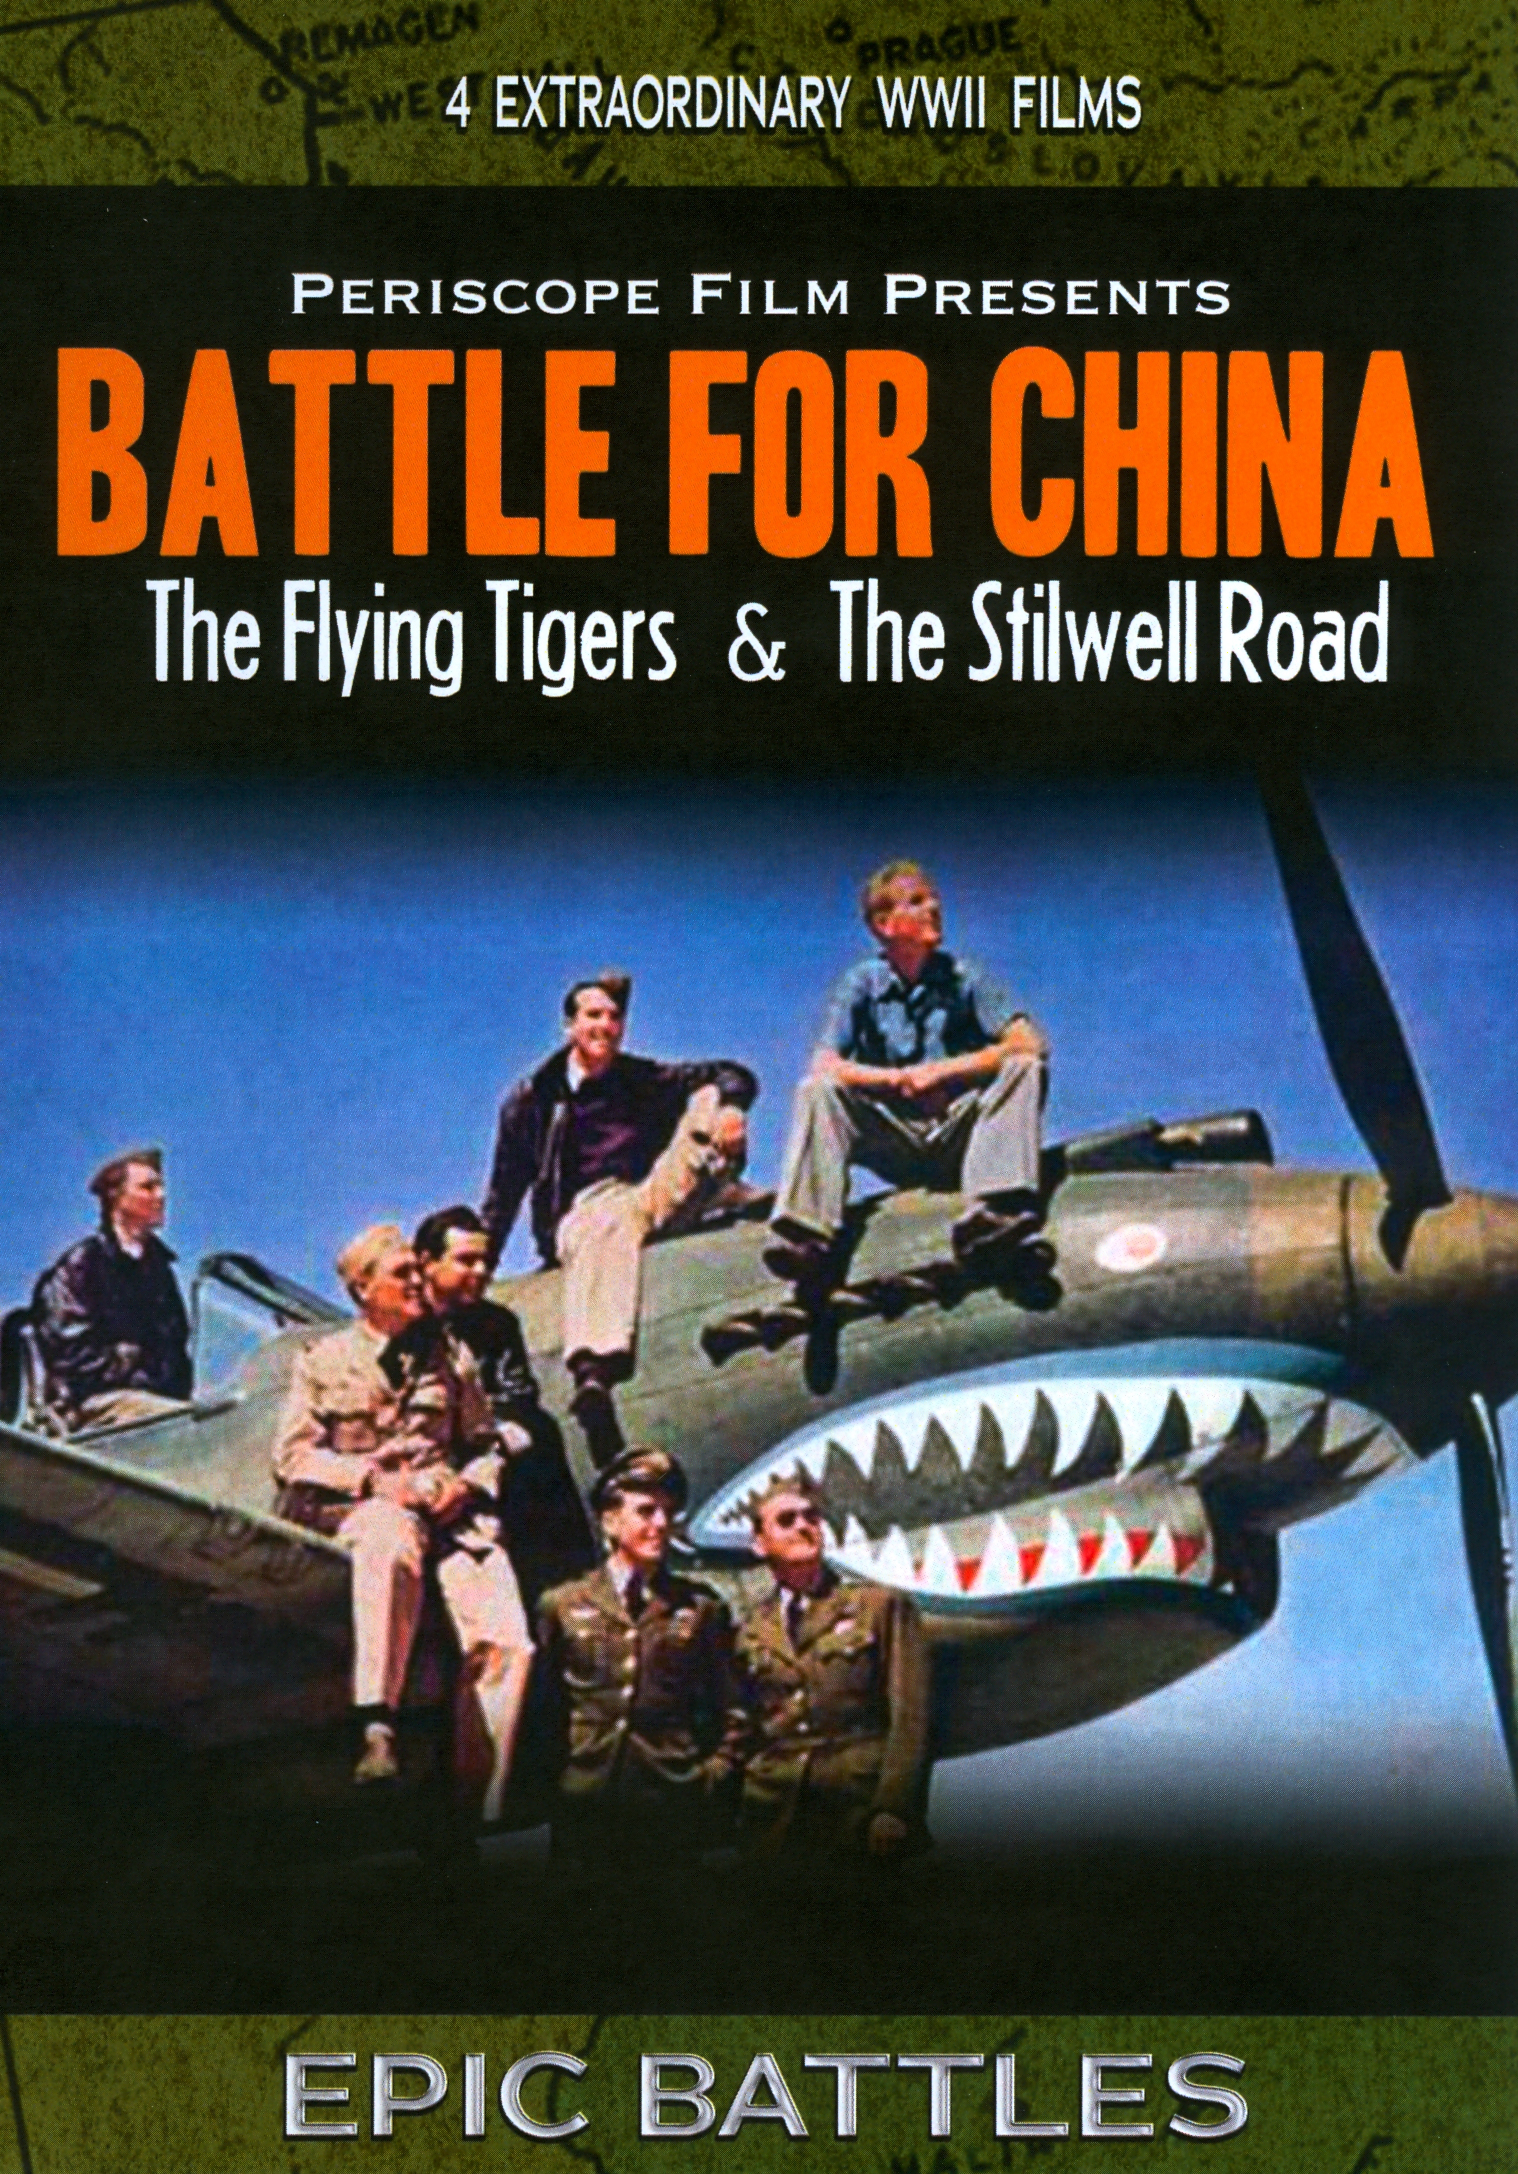 Battle For China: The Flying Tigers & The Stillwell Road